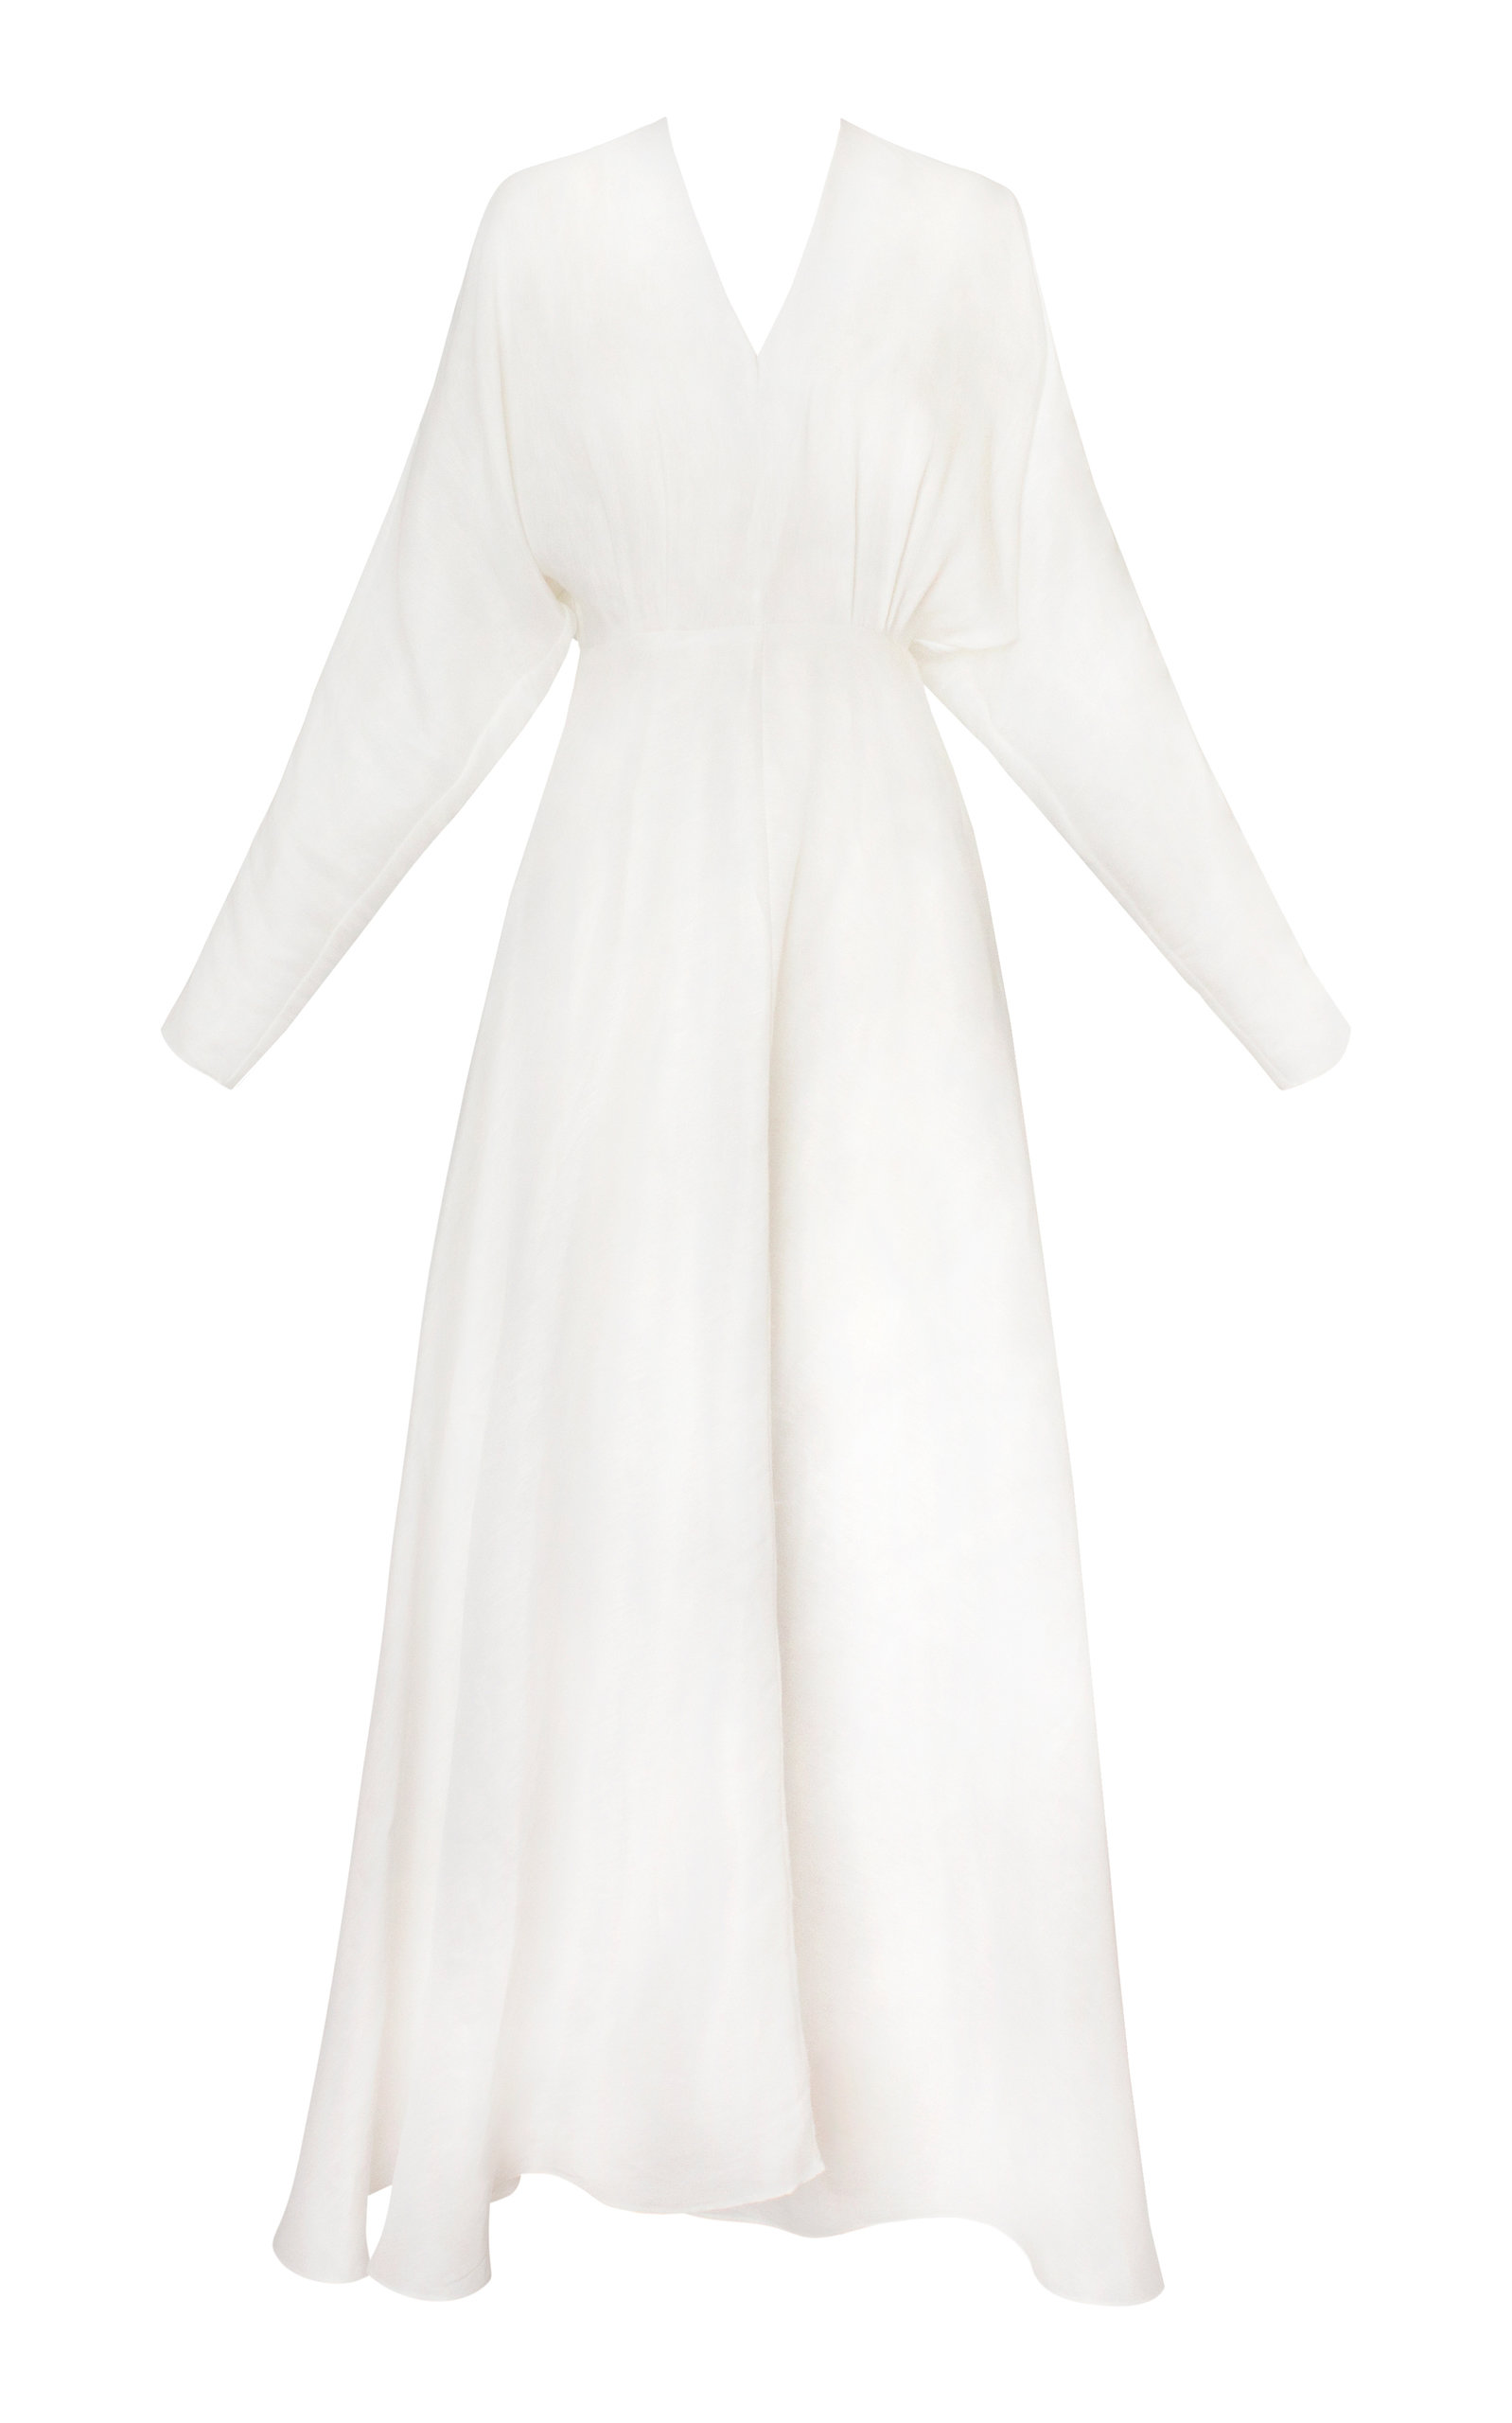 Buy Alejandra Alonso Rojas Linen-Blend Dress online, shop Alejandra Alonso Rojas at the best price